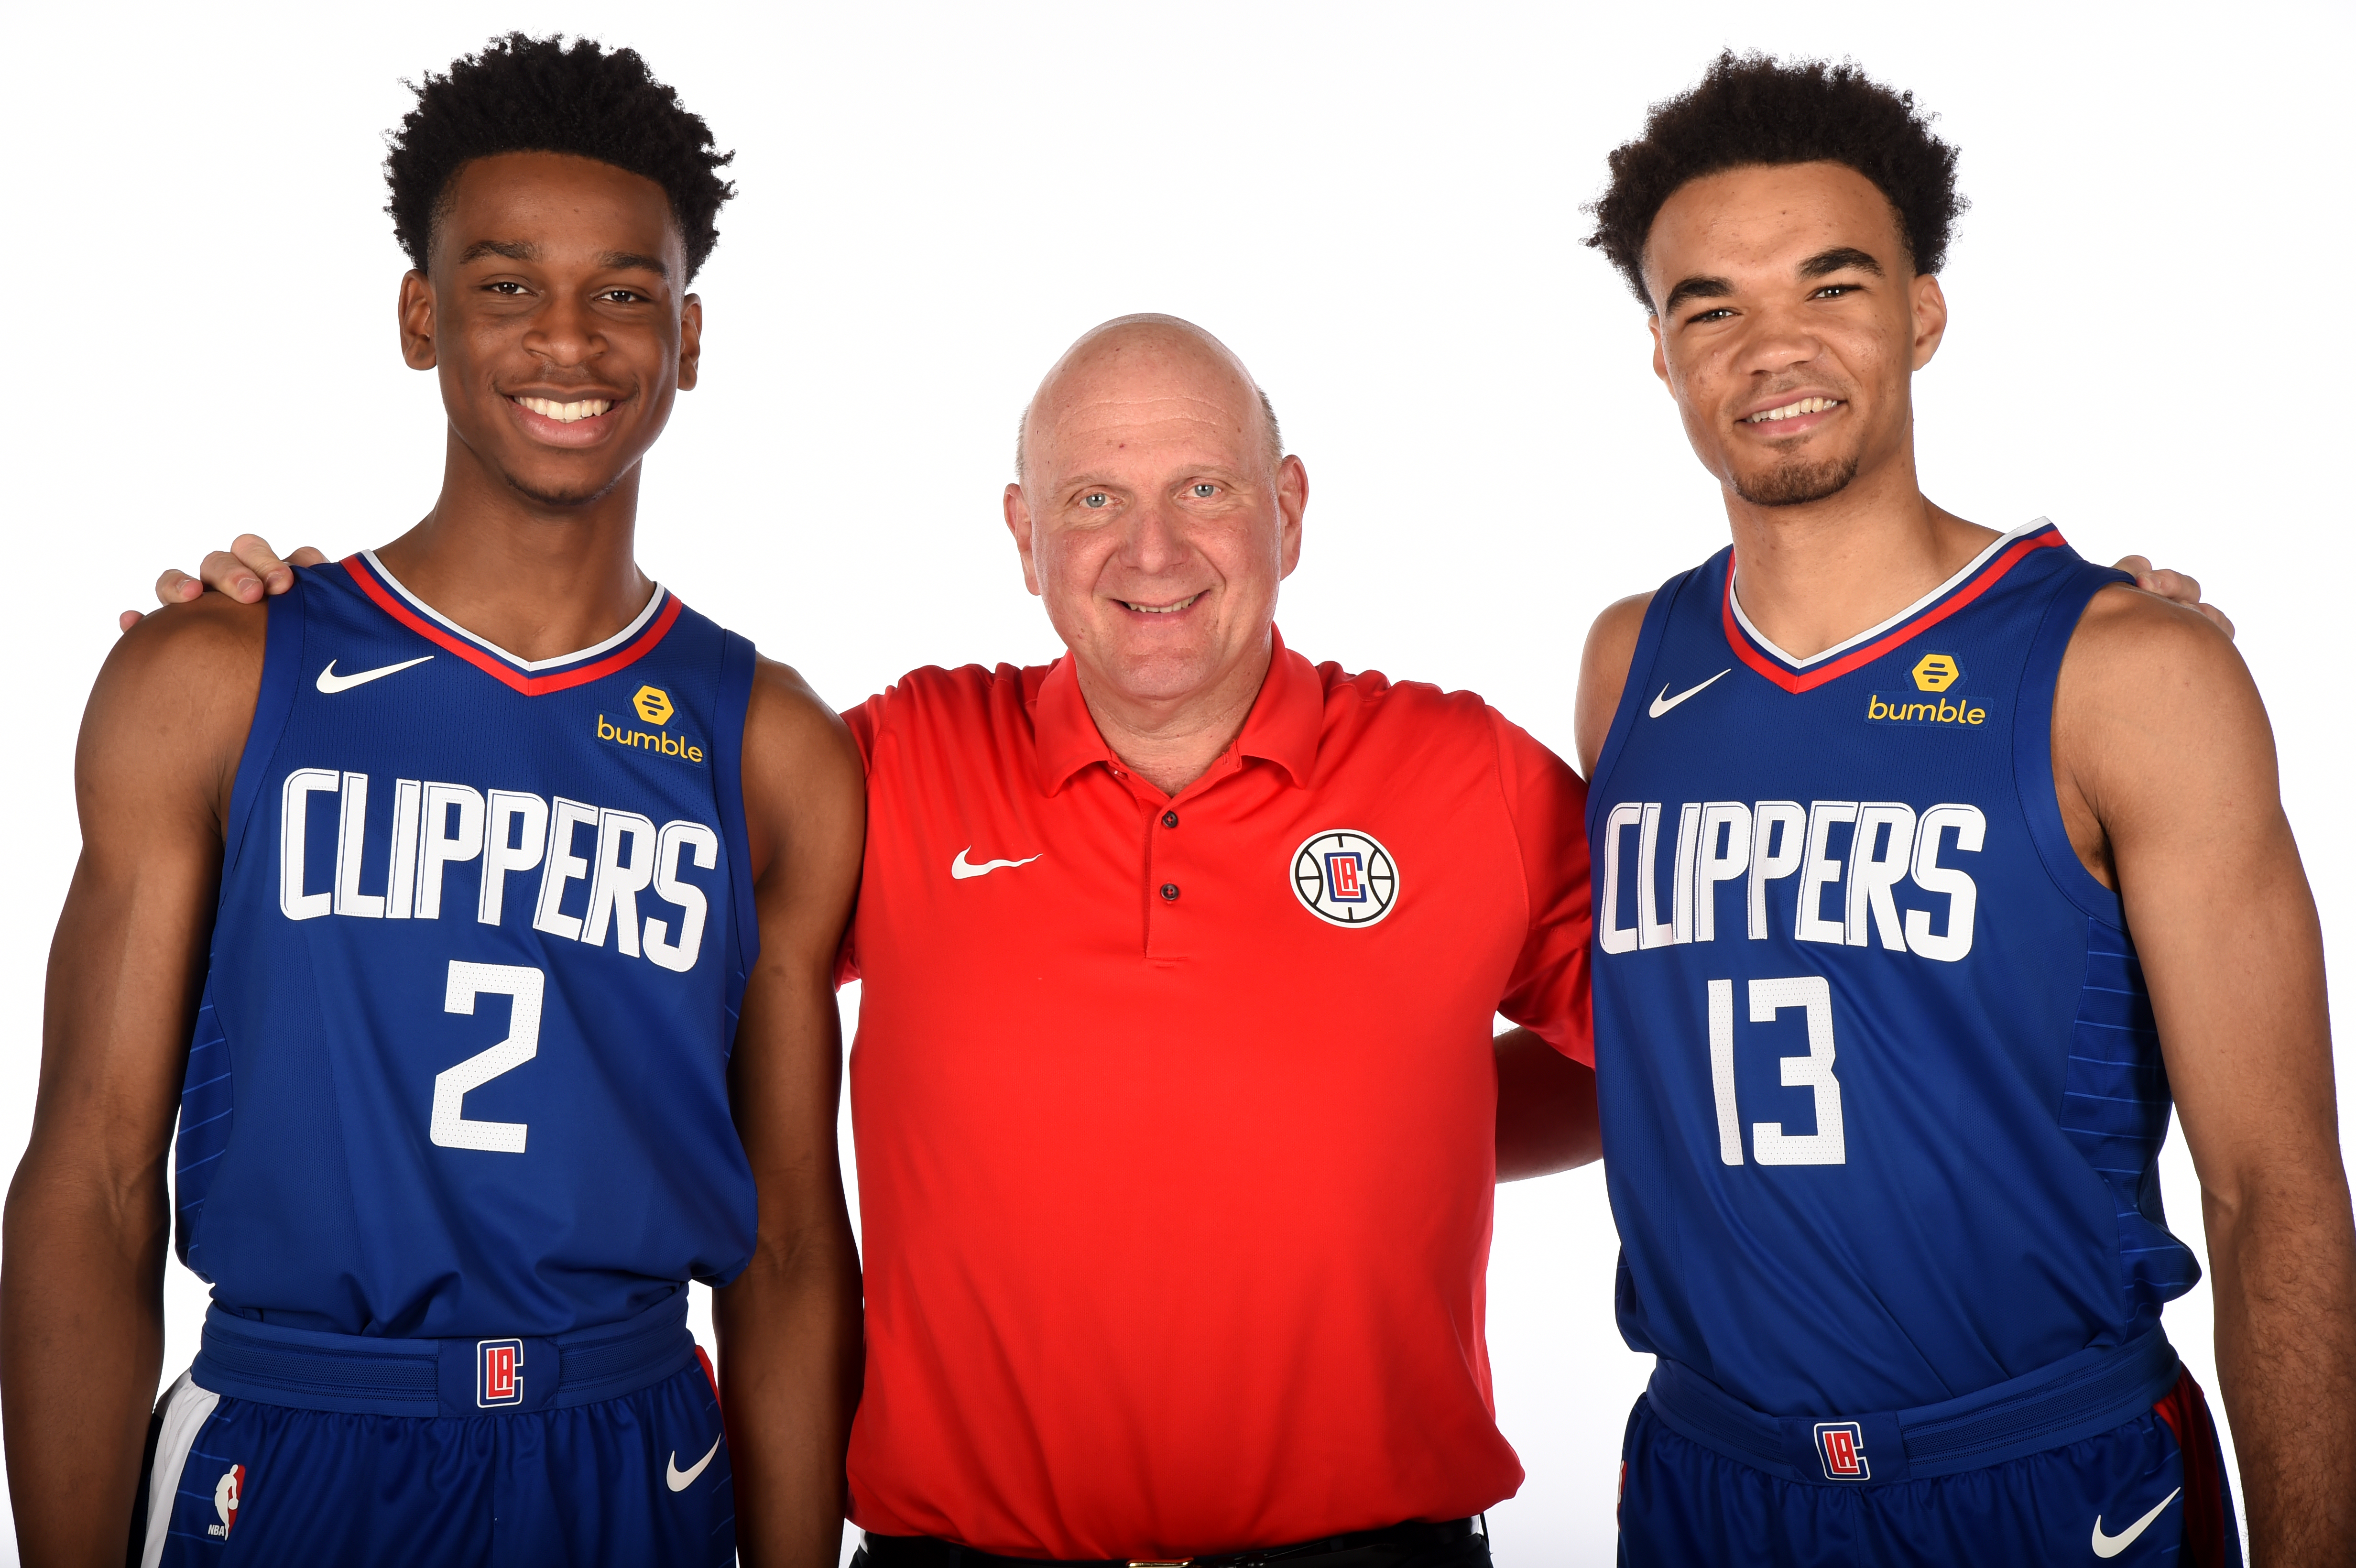 LA Clippers Draft Press Conference and Portraits